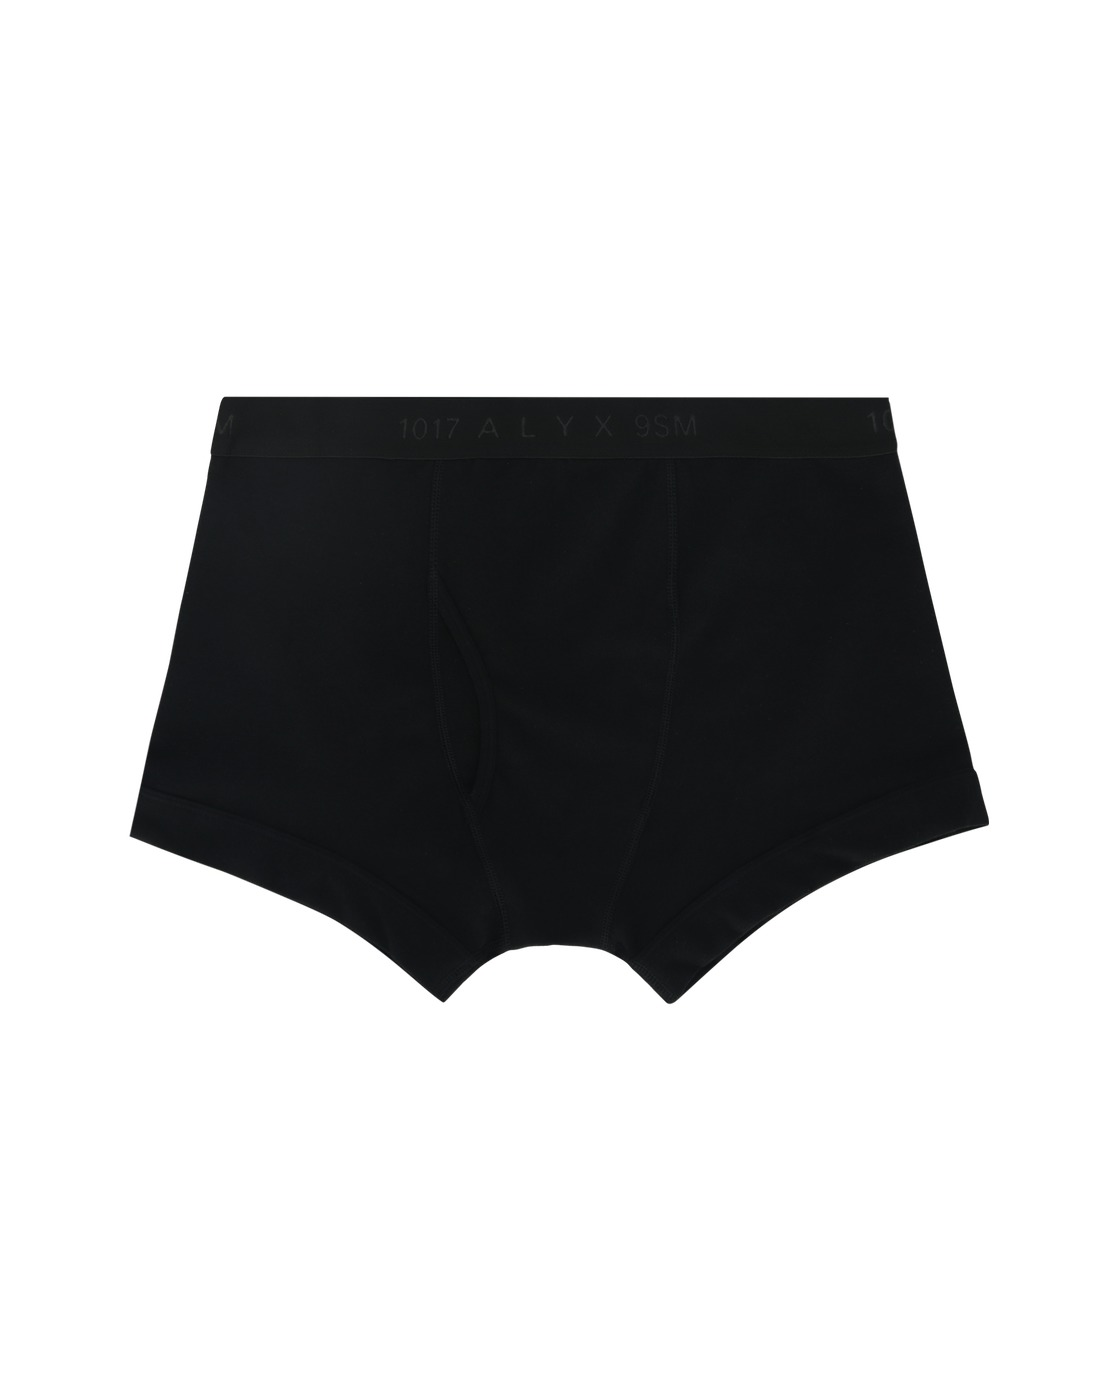 Photo: 1017 Alyx 9sm 3 Pack Boxers Black